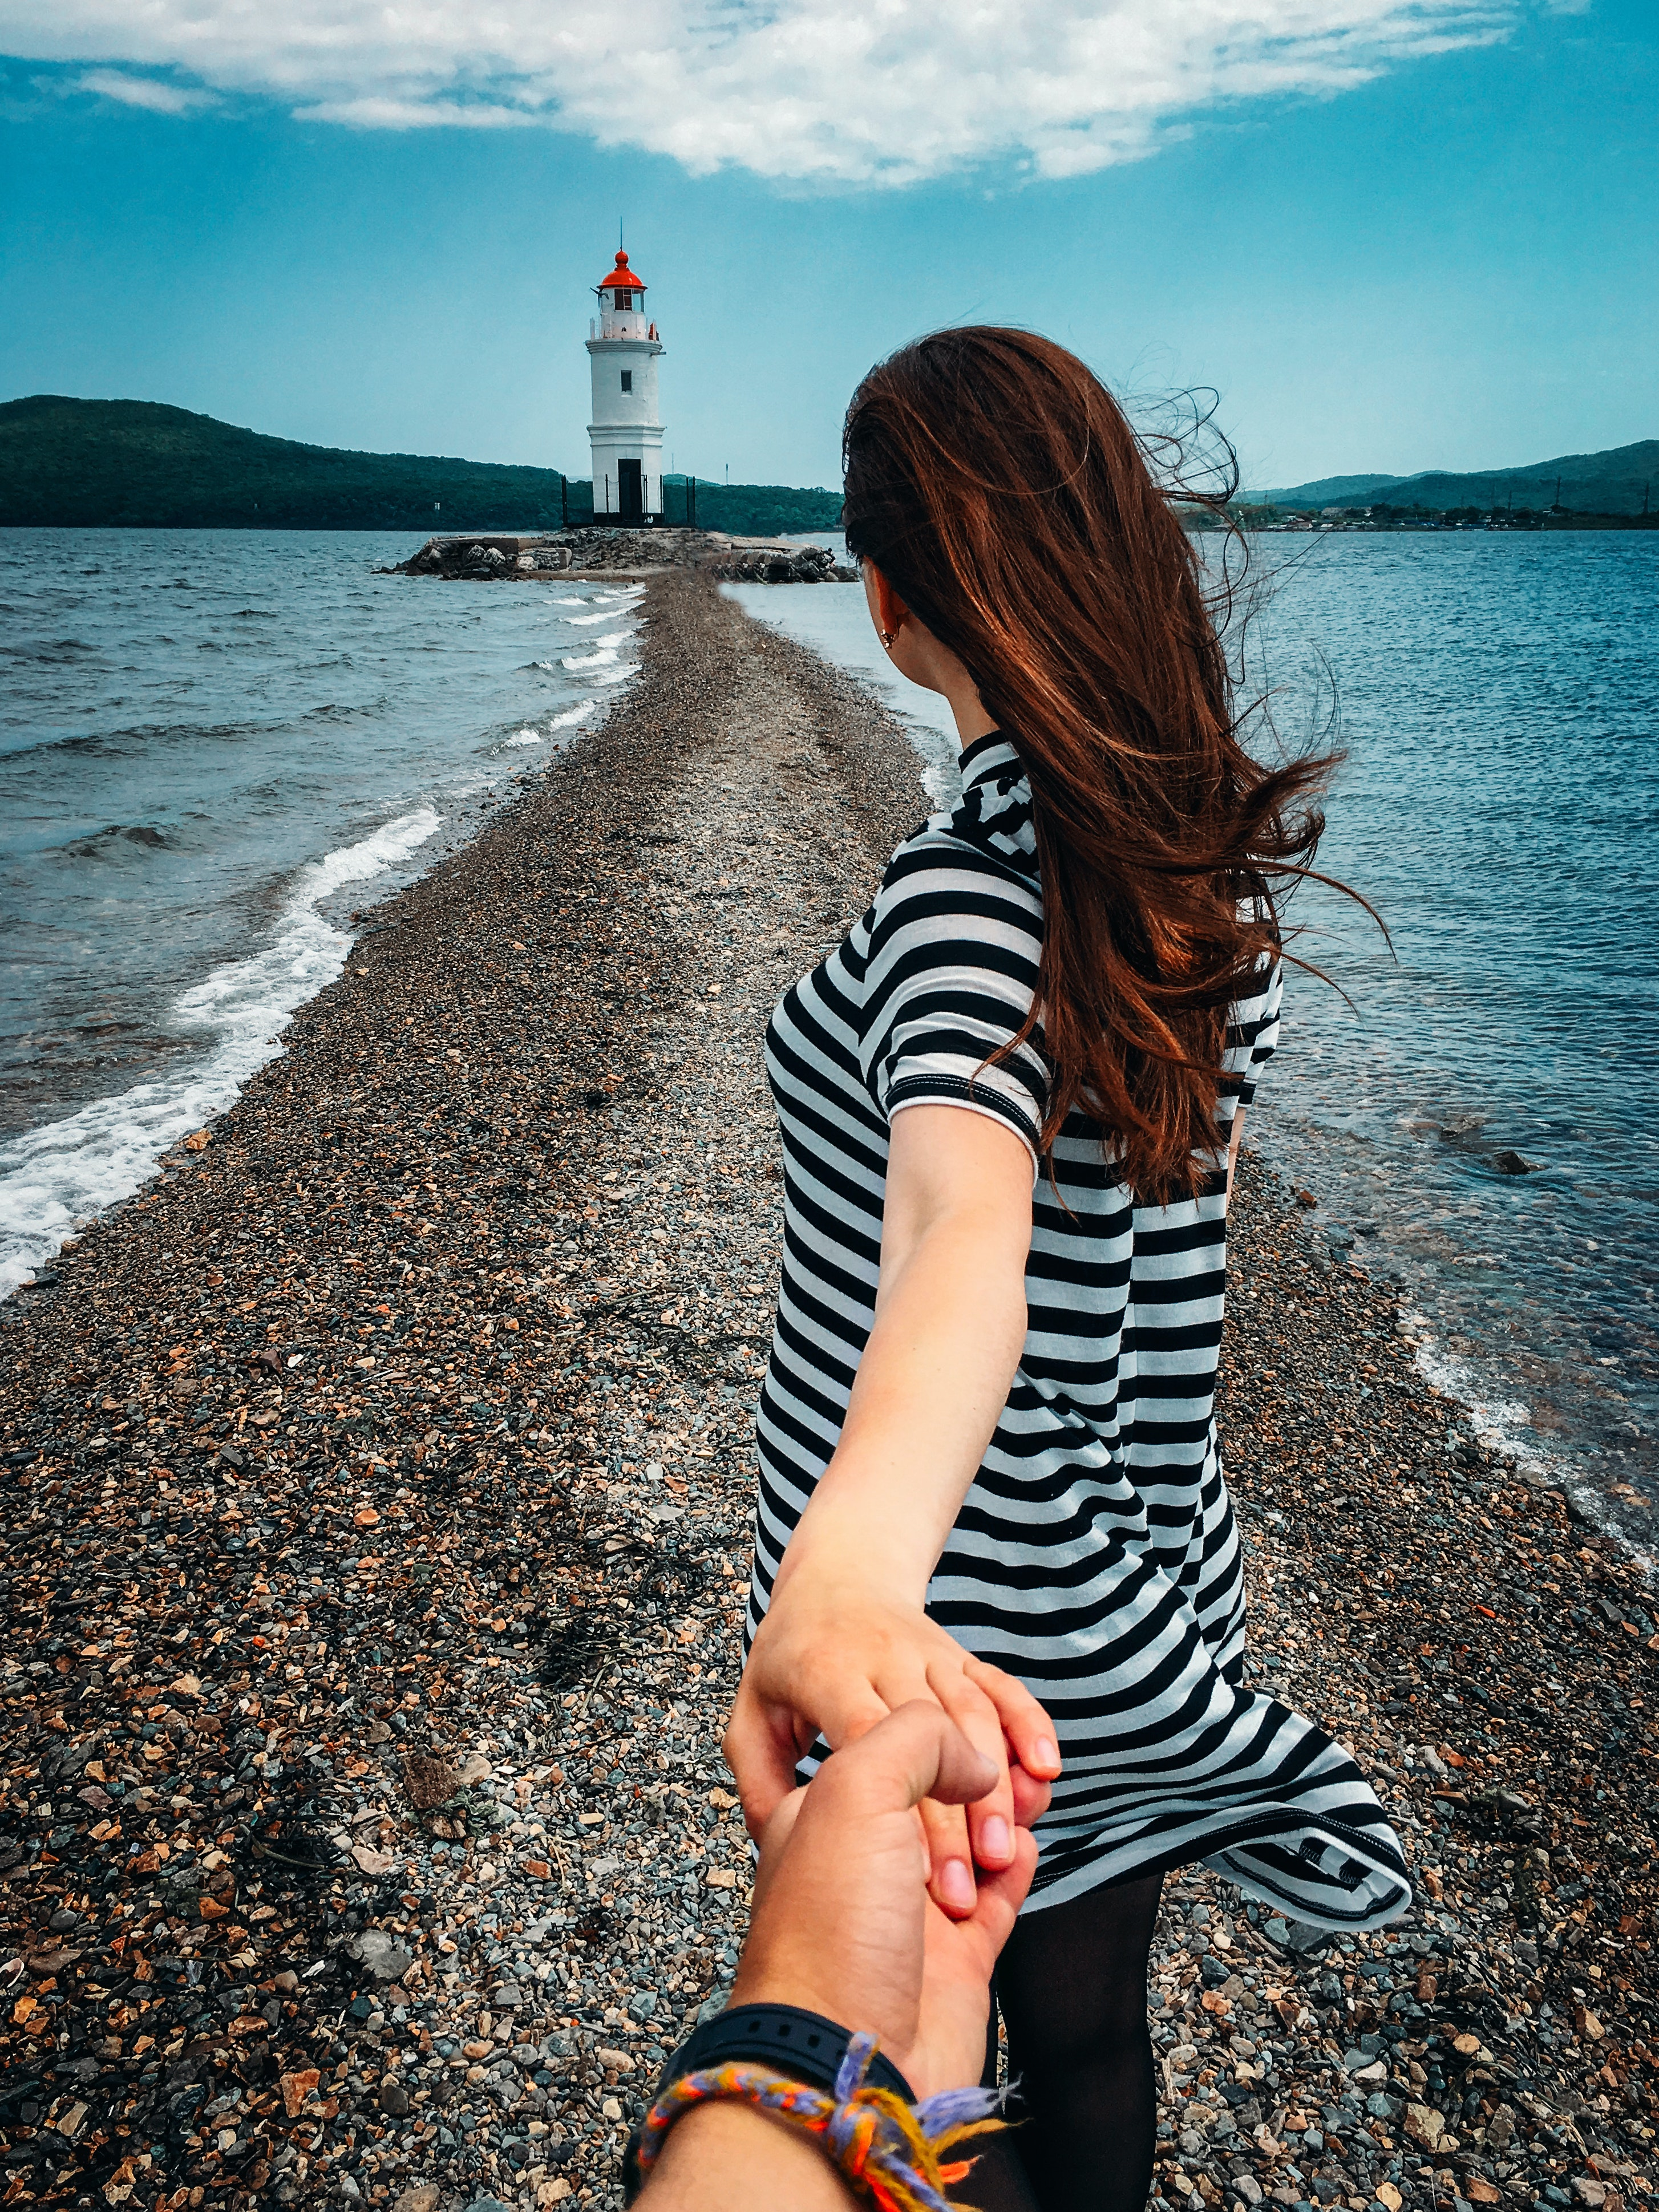 Image result for holding on to person